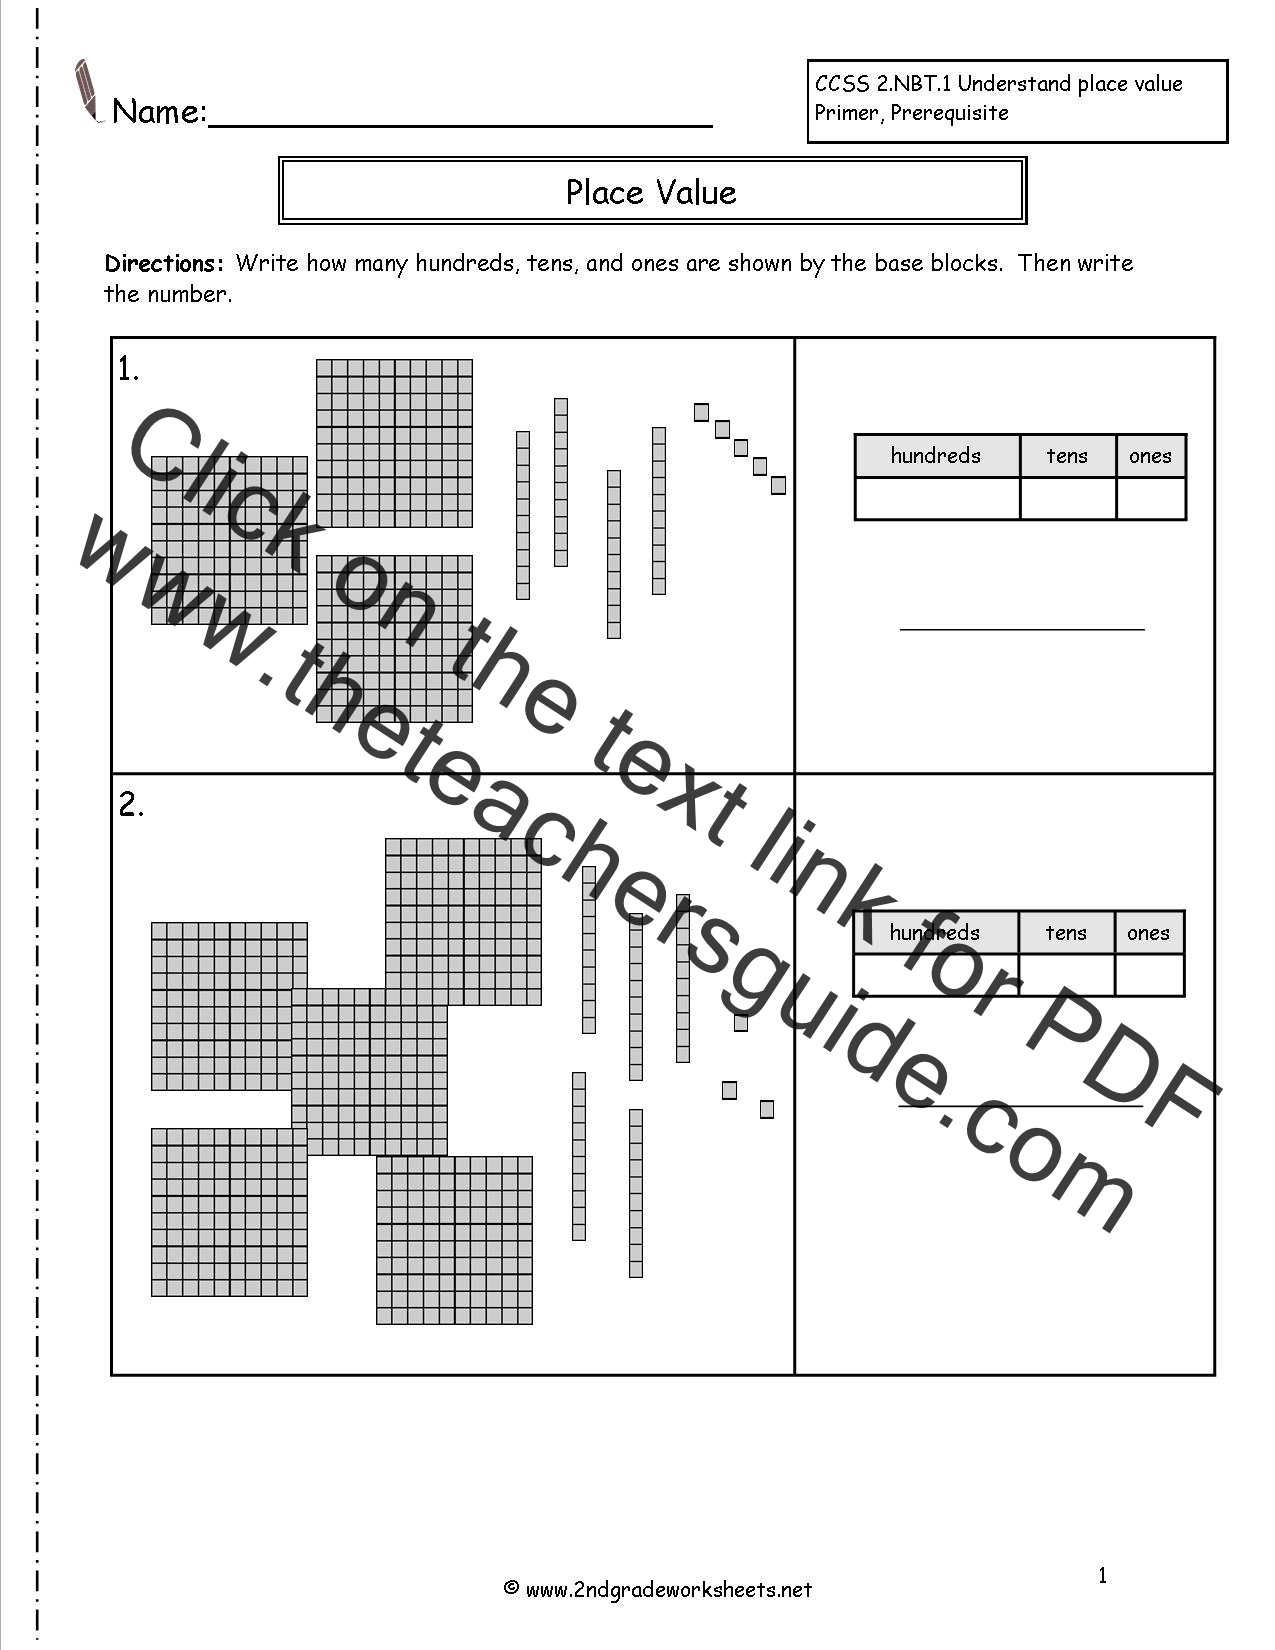 Place Value For Math Free Worksheet For 3rd Grade